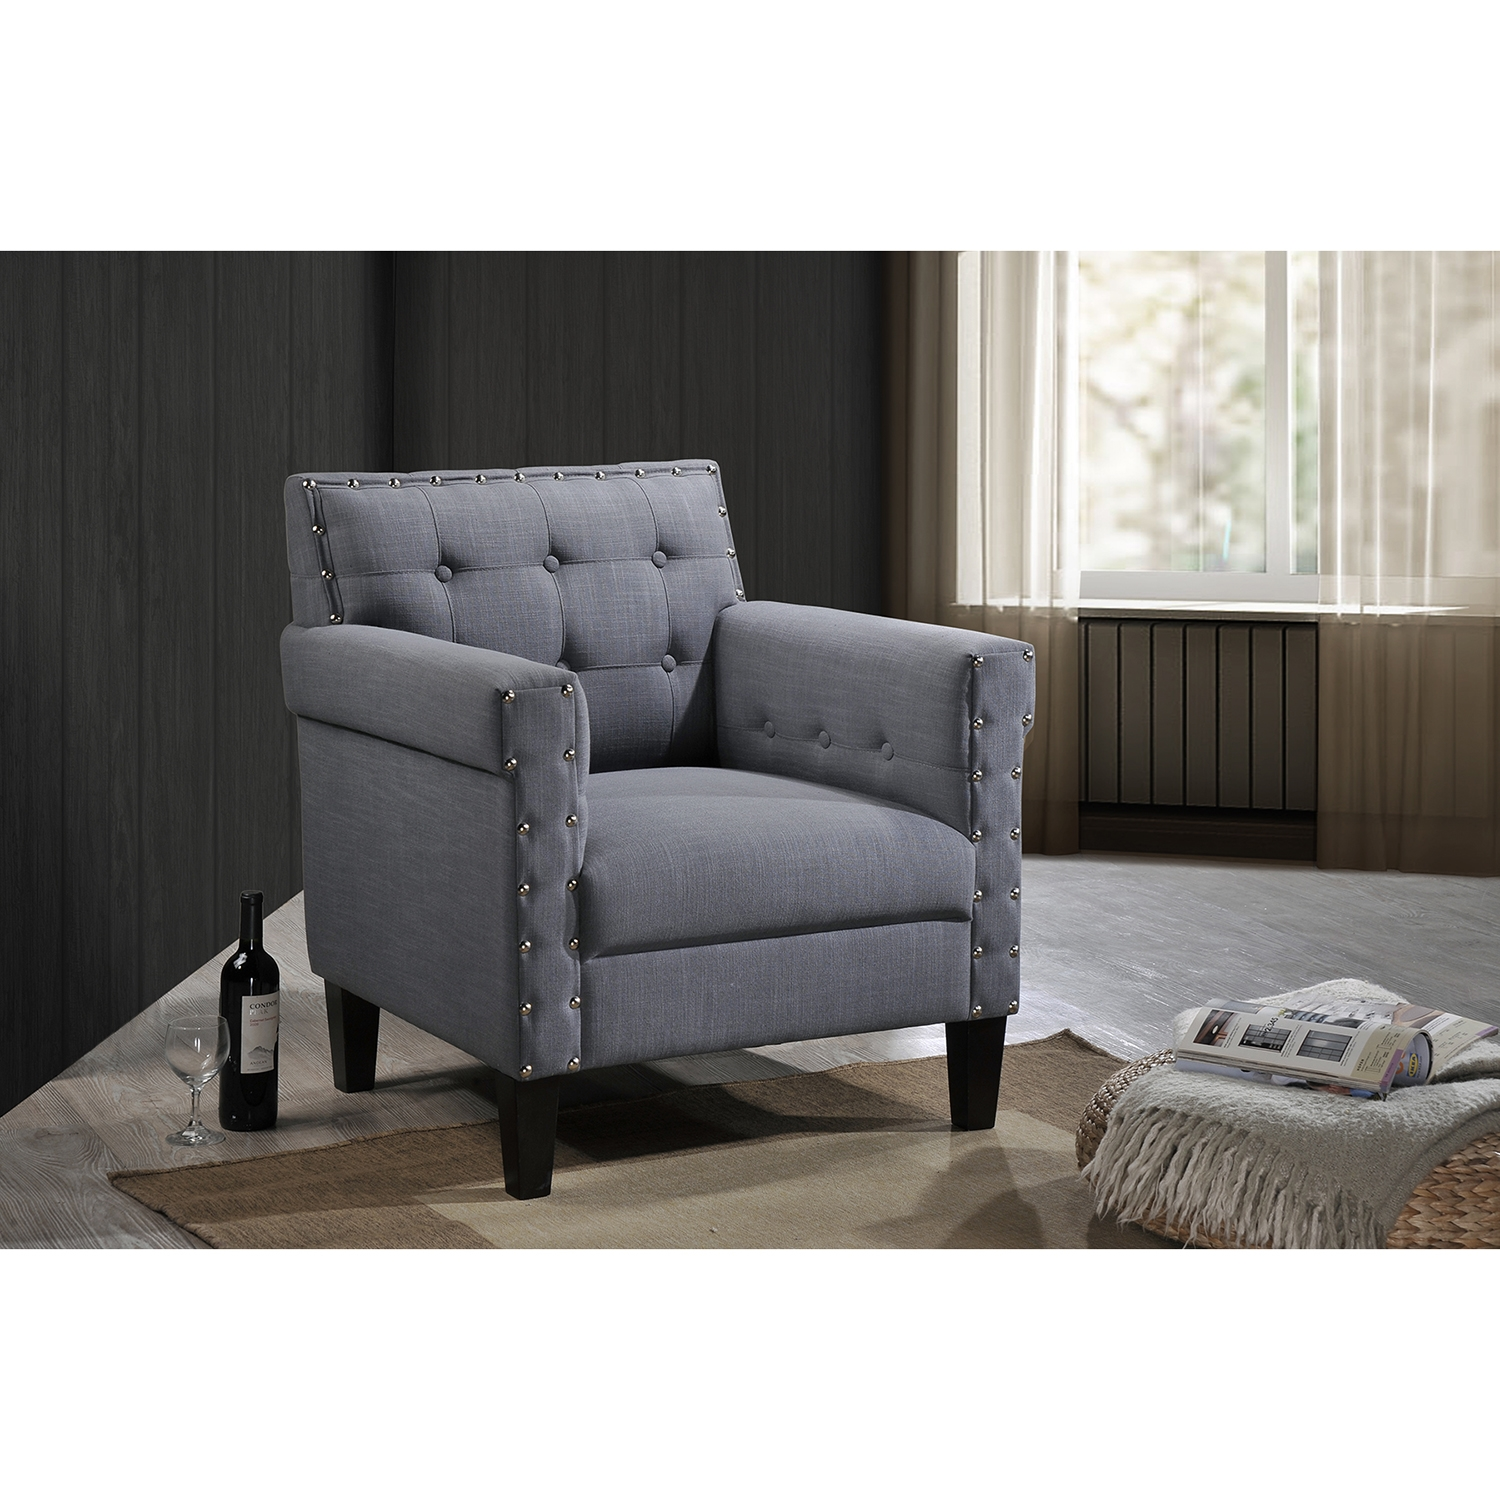 baxton studio odella modern and grey linen upholstered armchair with nailheads